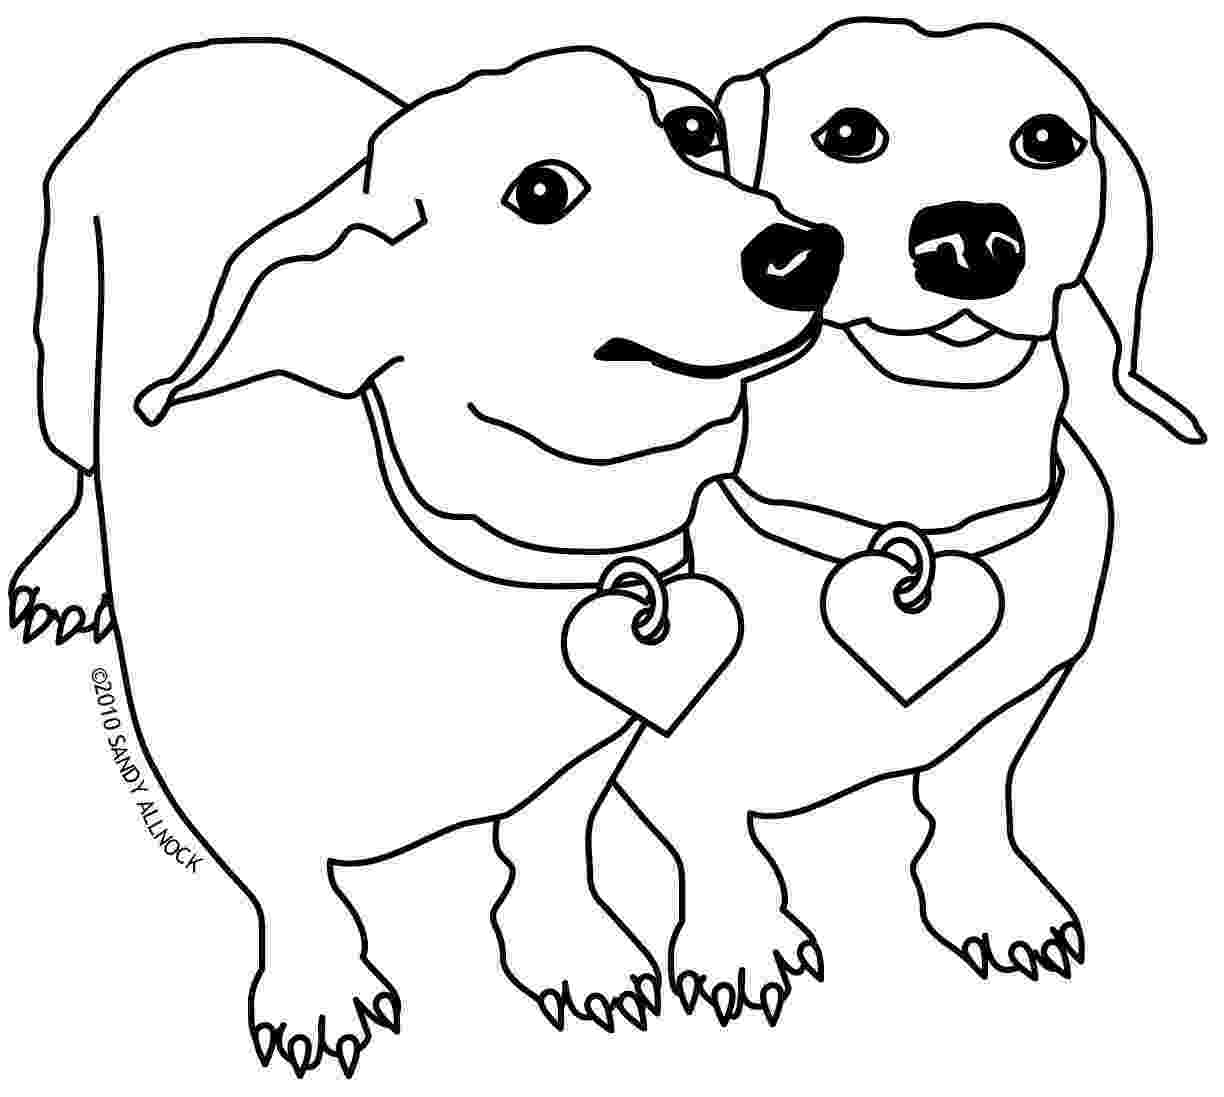 dachshund coloring pages dachshund printable coloring pages doxie heaven dog dachshund pages coloring